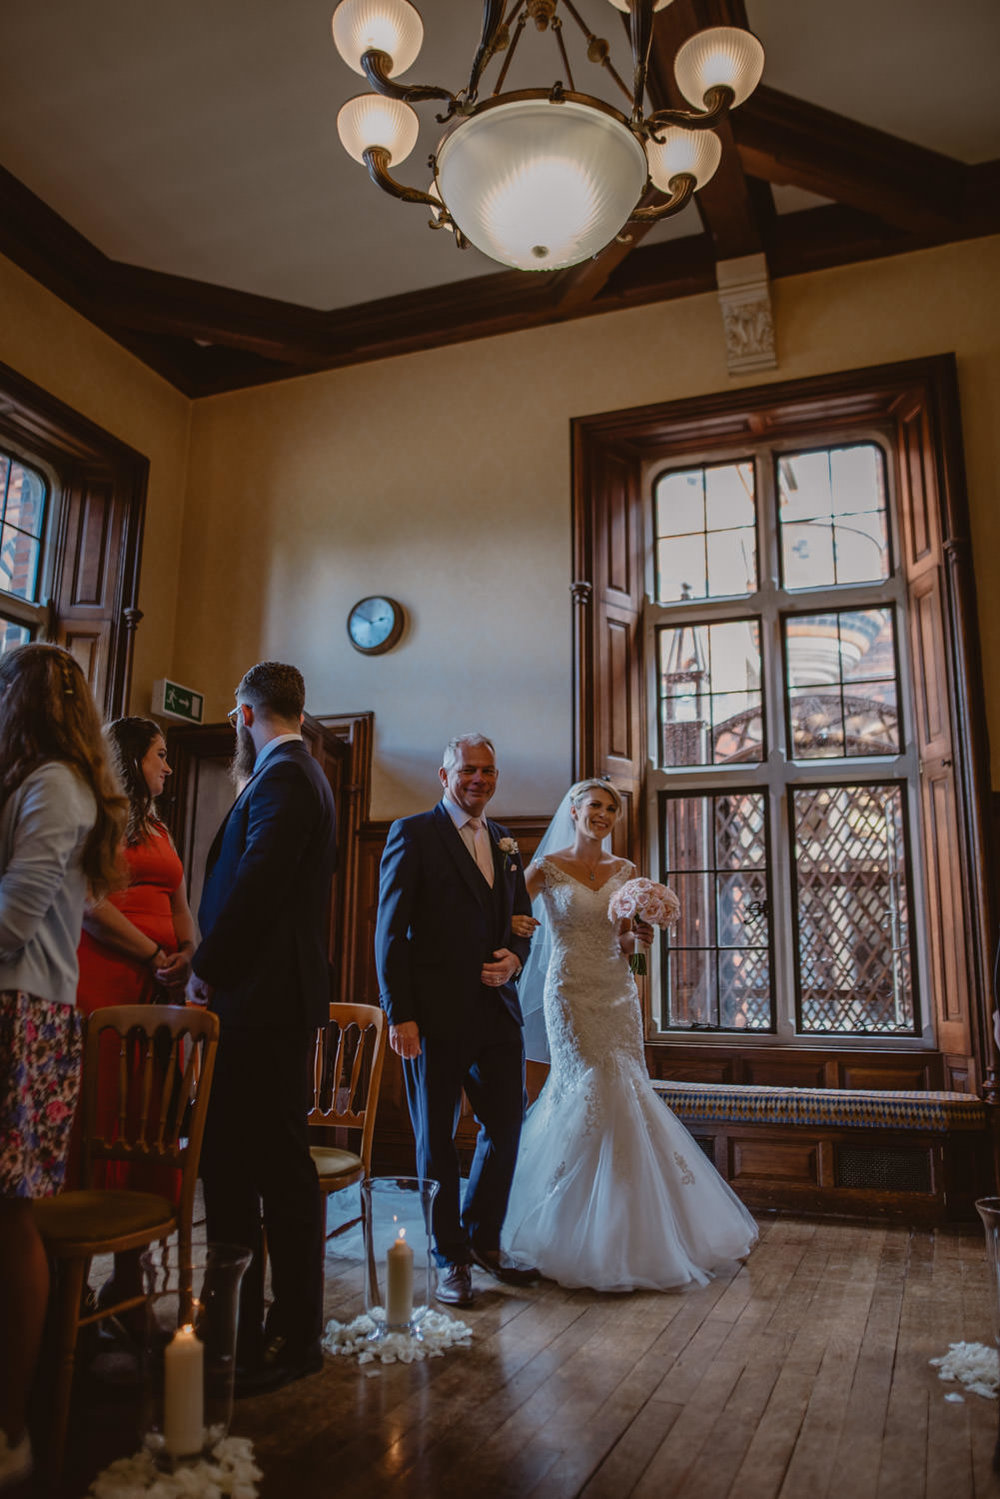 Wedding Ceremony at The Elvetham Hotel in Hampshire